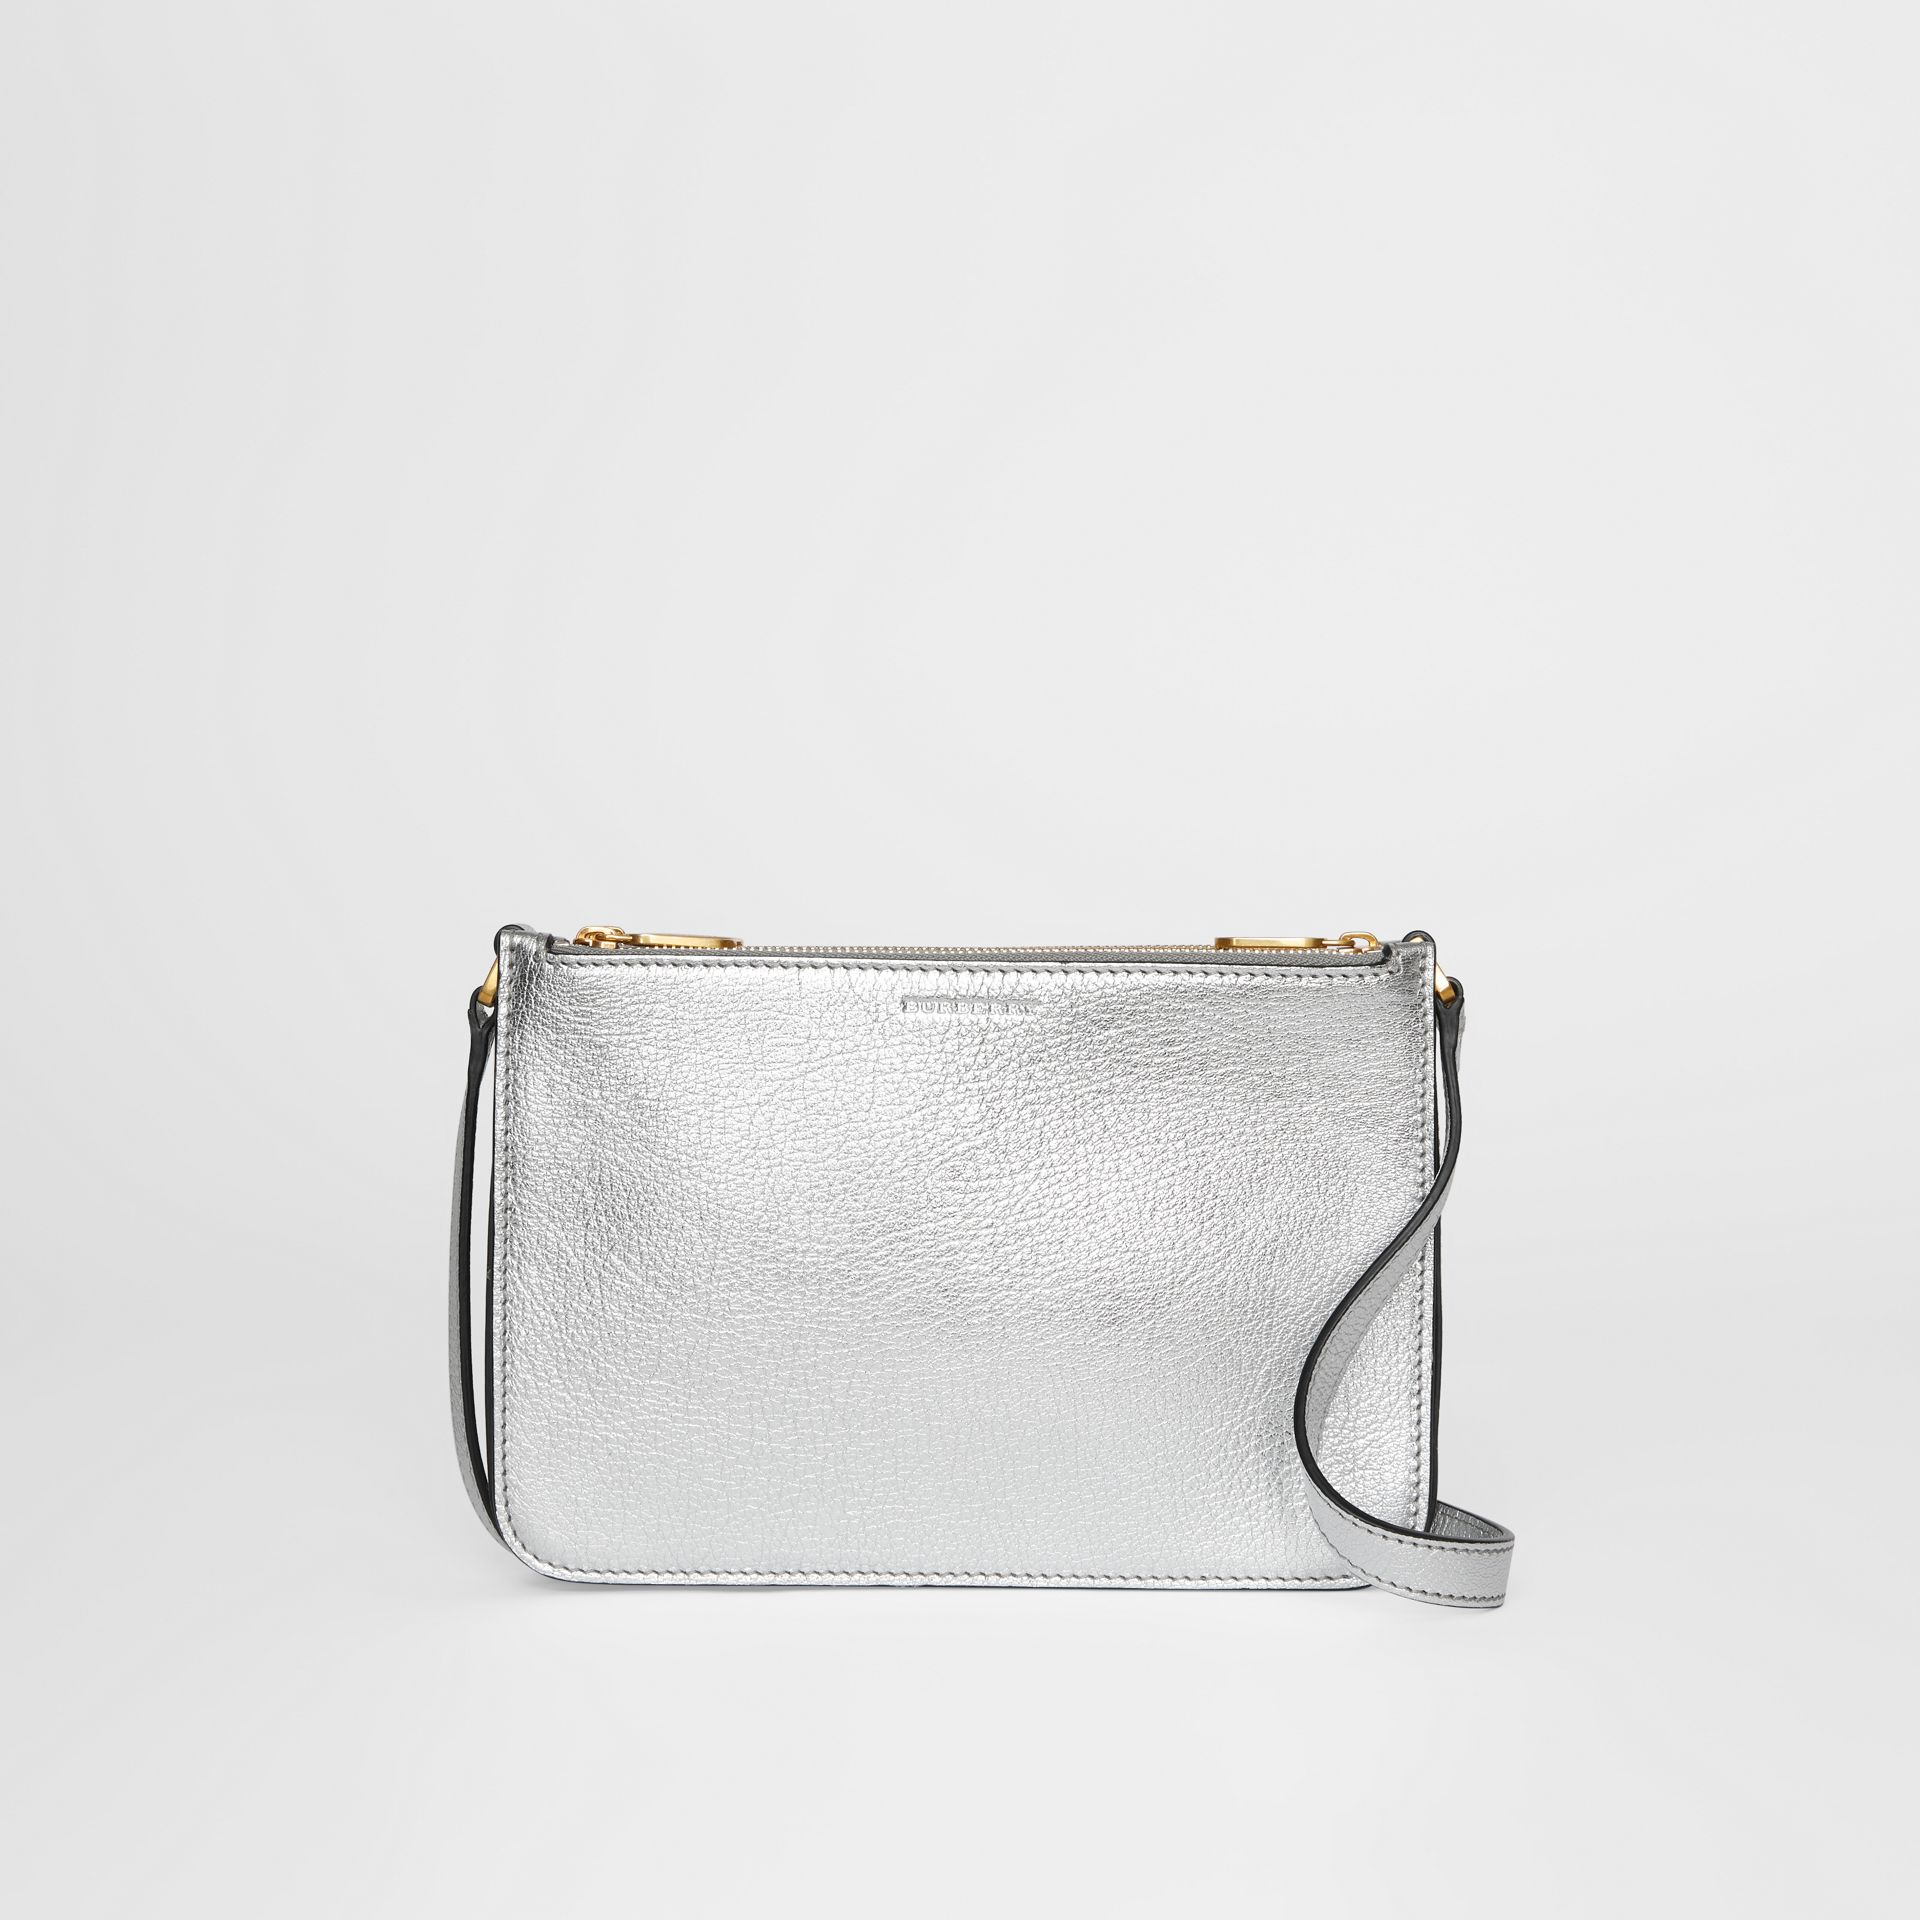 Triple Zip Metallic Leather Crossbody Bag in Silver - Women | Burberry - gallery image 0